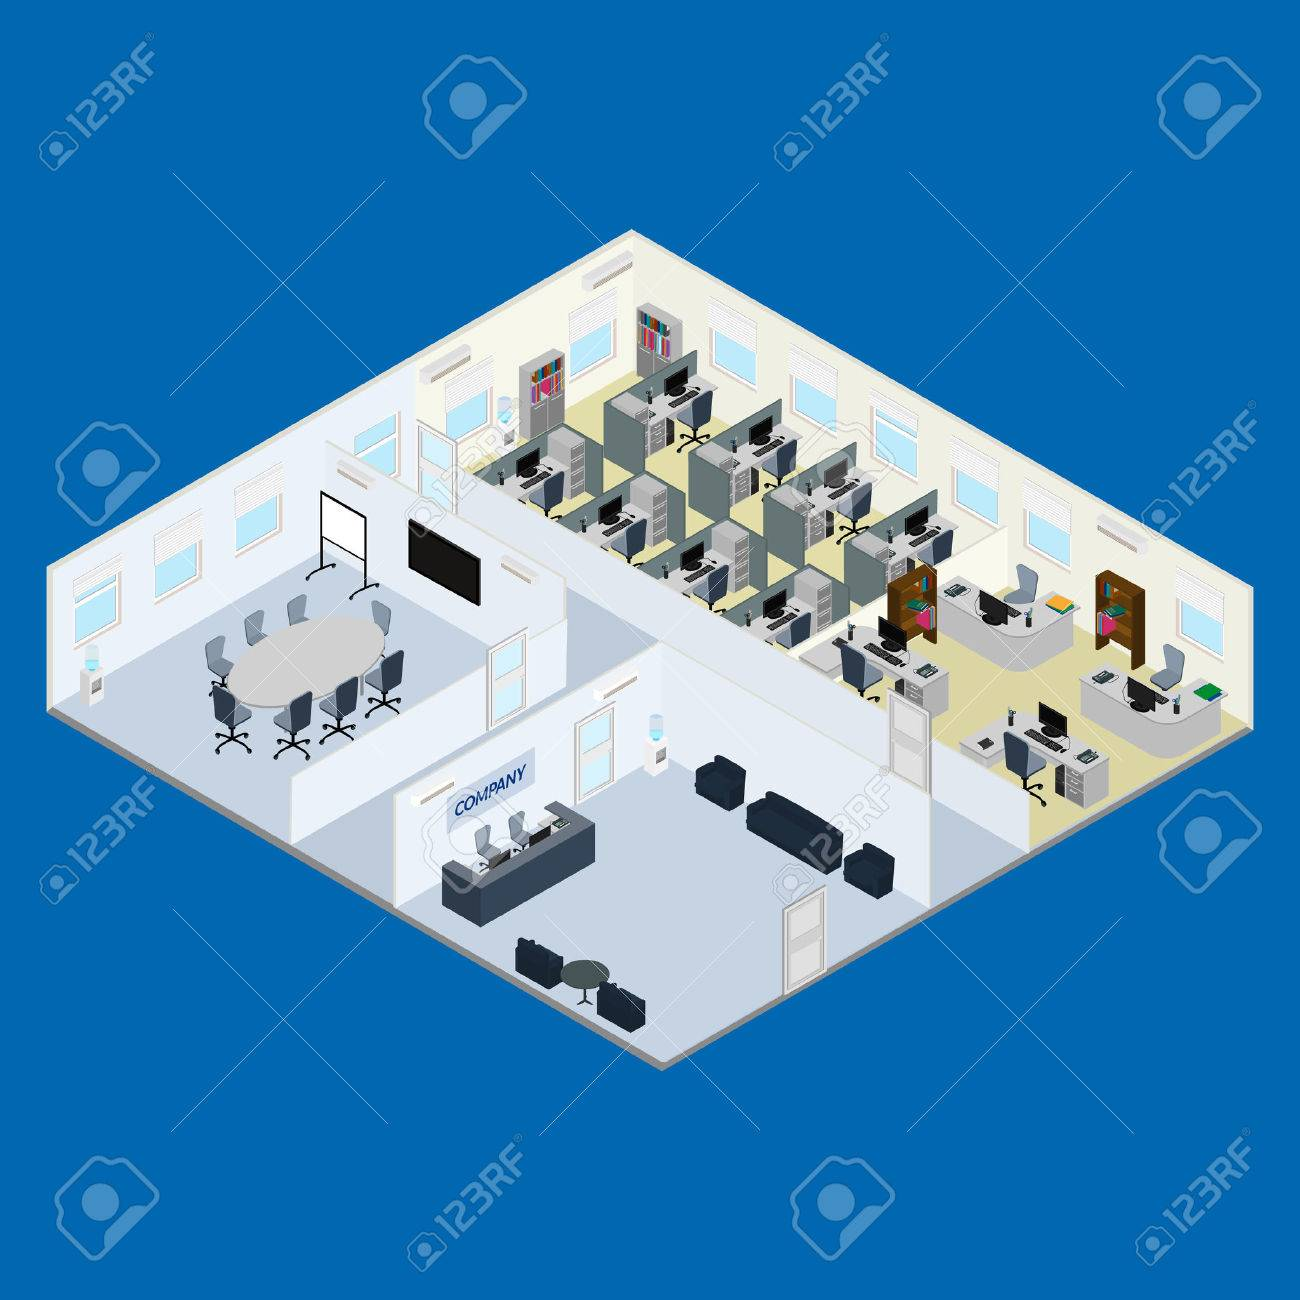 illustration. Office interior - reception, meeting room, open office space, room for management. isometric. - 53649869